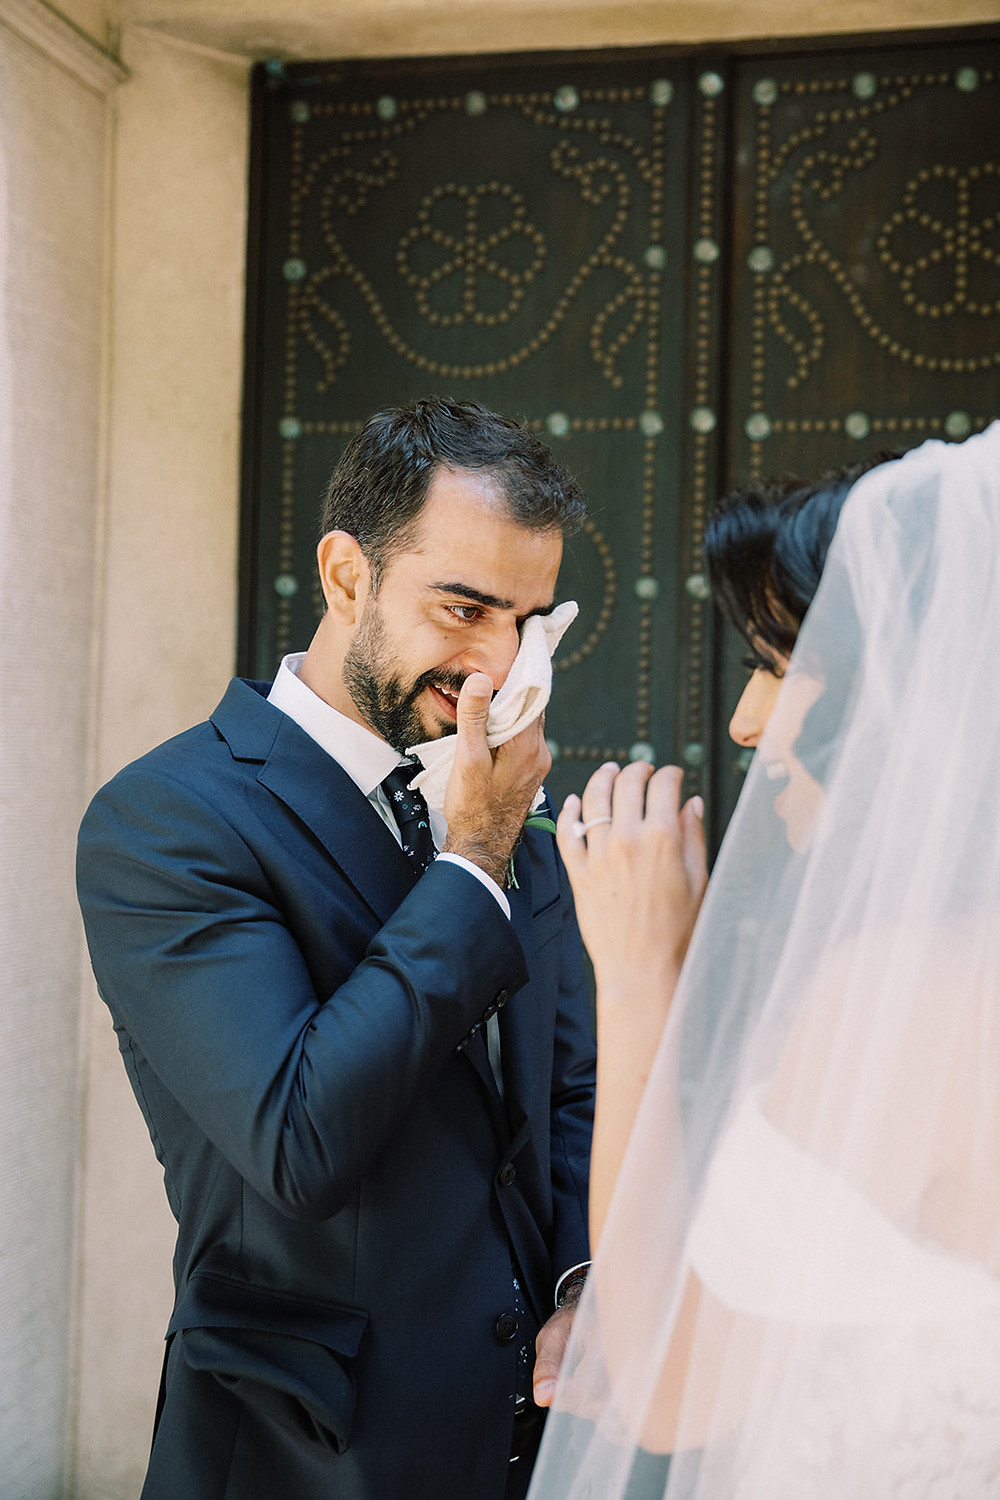 Parastou + Ali's Romantic, Timeliness Ethnic Wedding at the Darlington House in La Jolla, CA